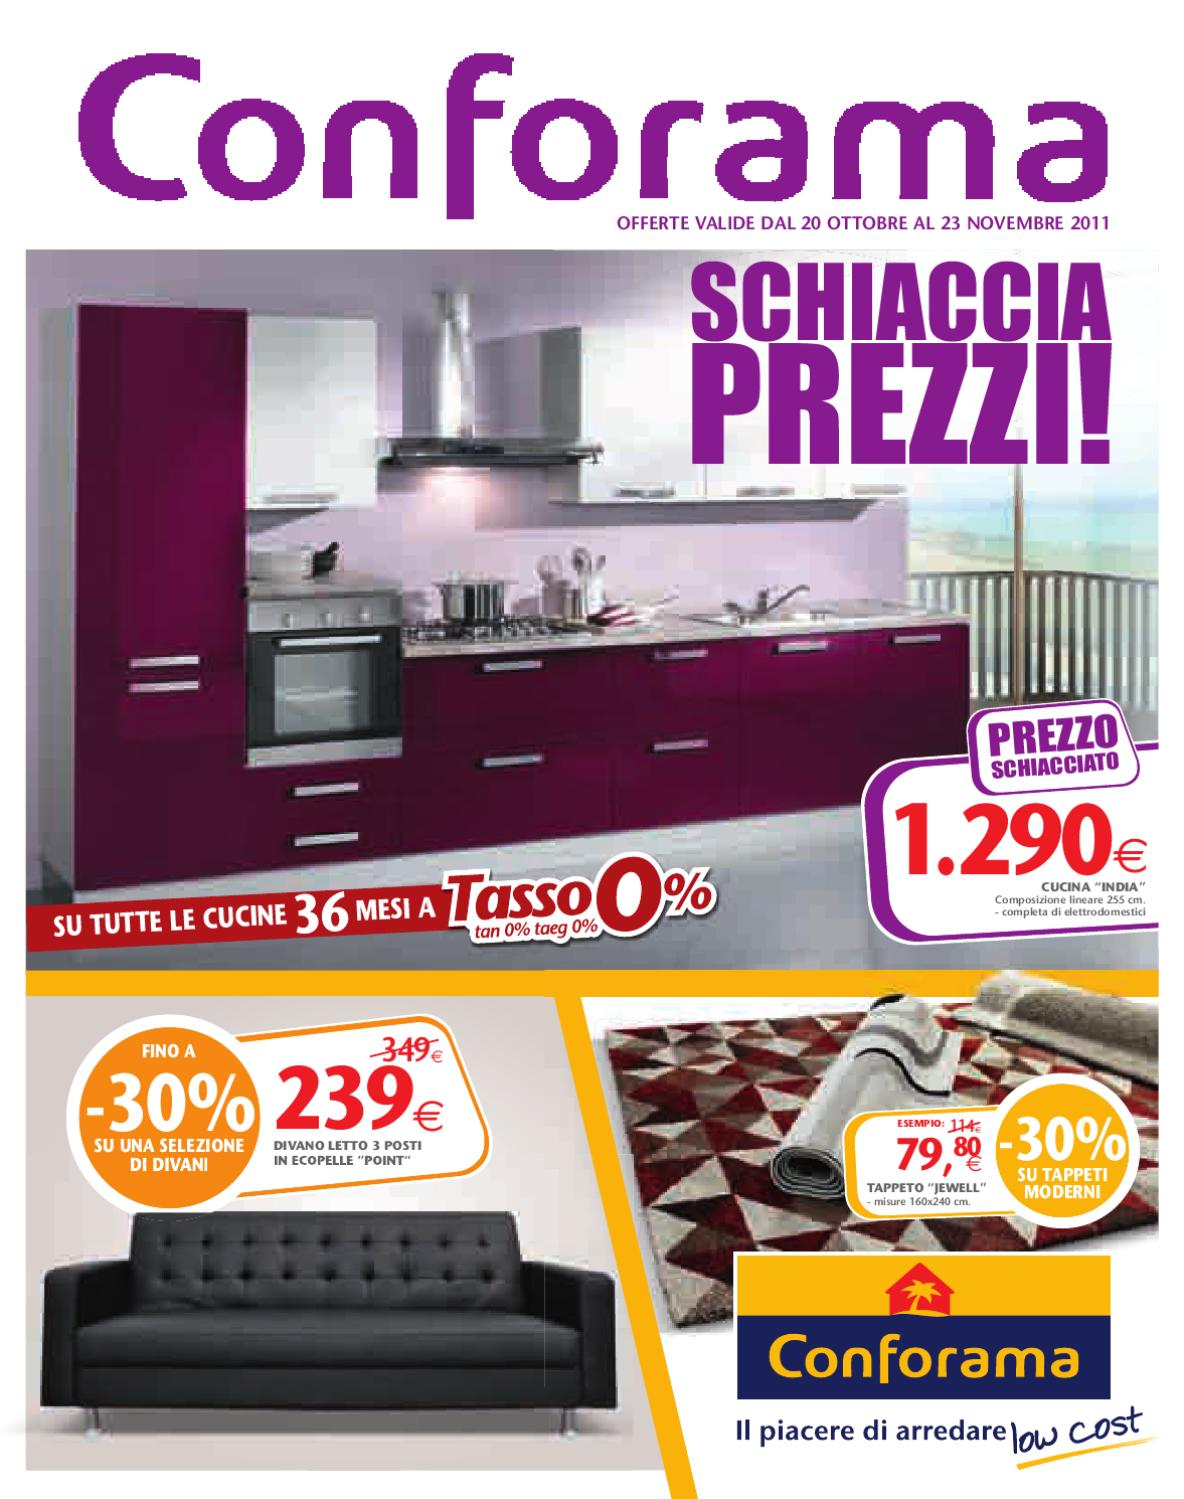 Conforama by gaetano Nicotra - issuu